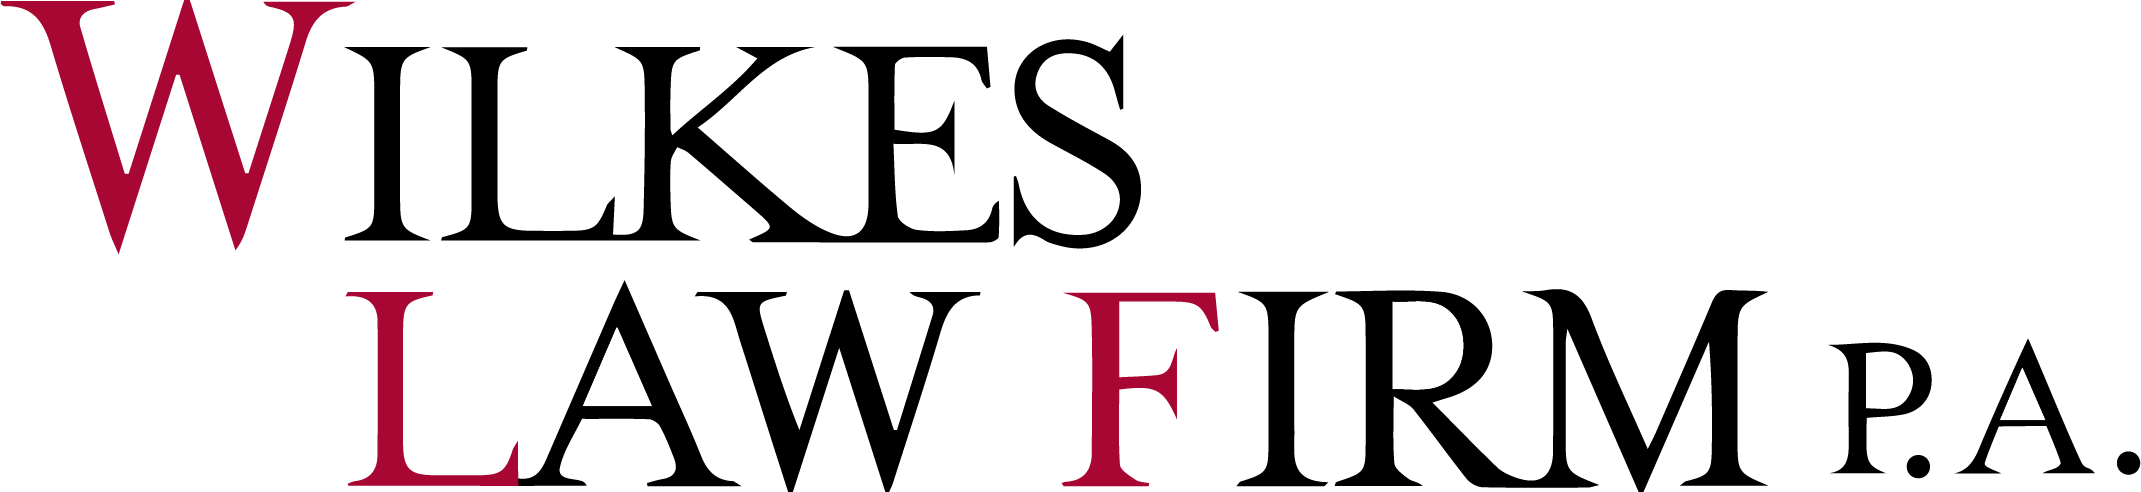 Wilkes Law Firm Retina Logo